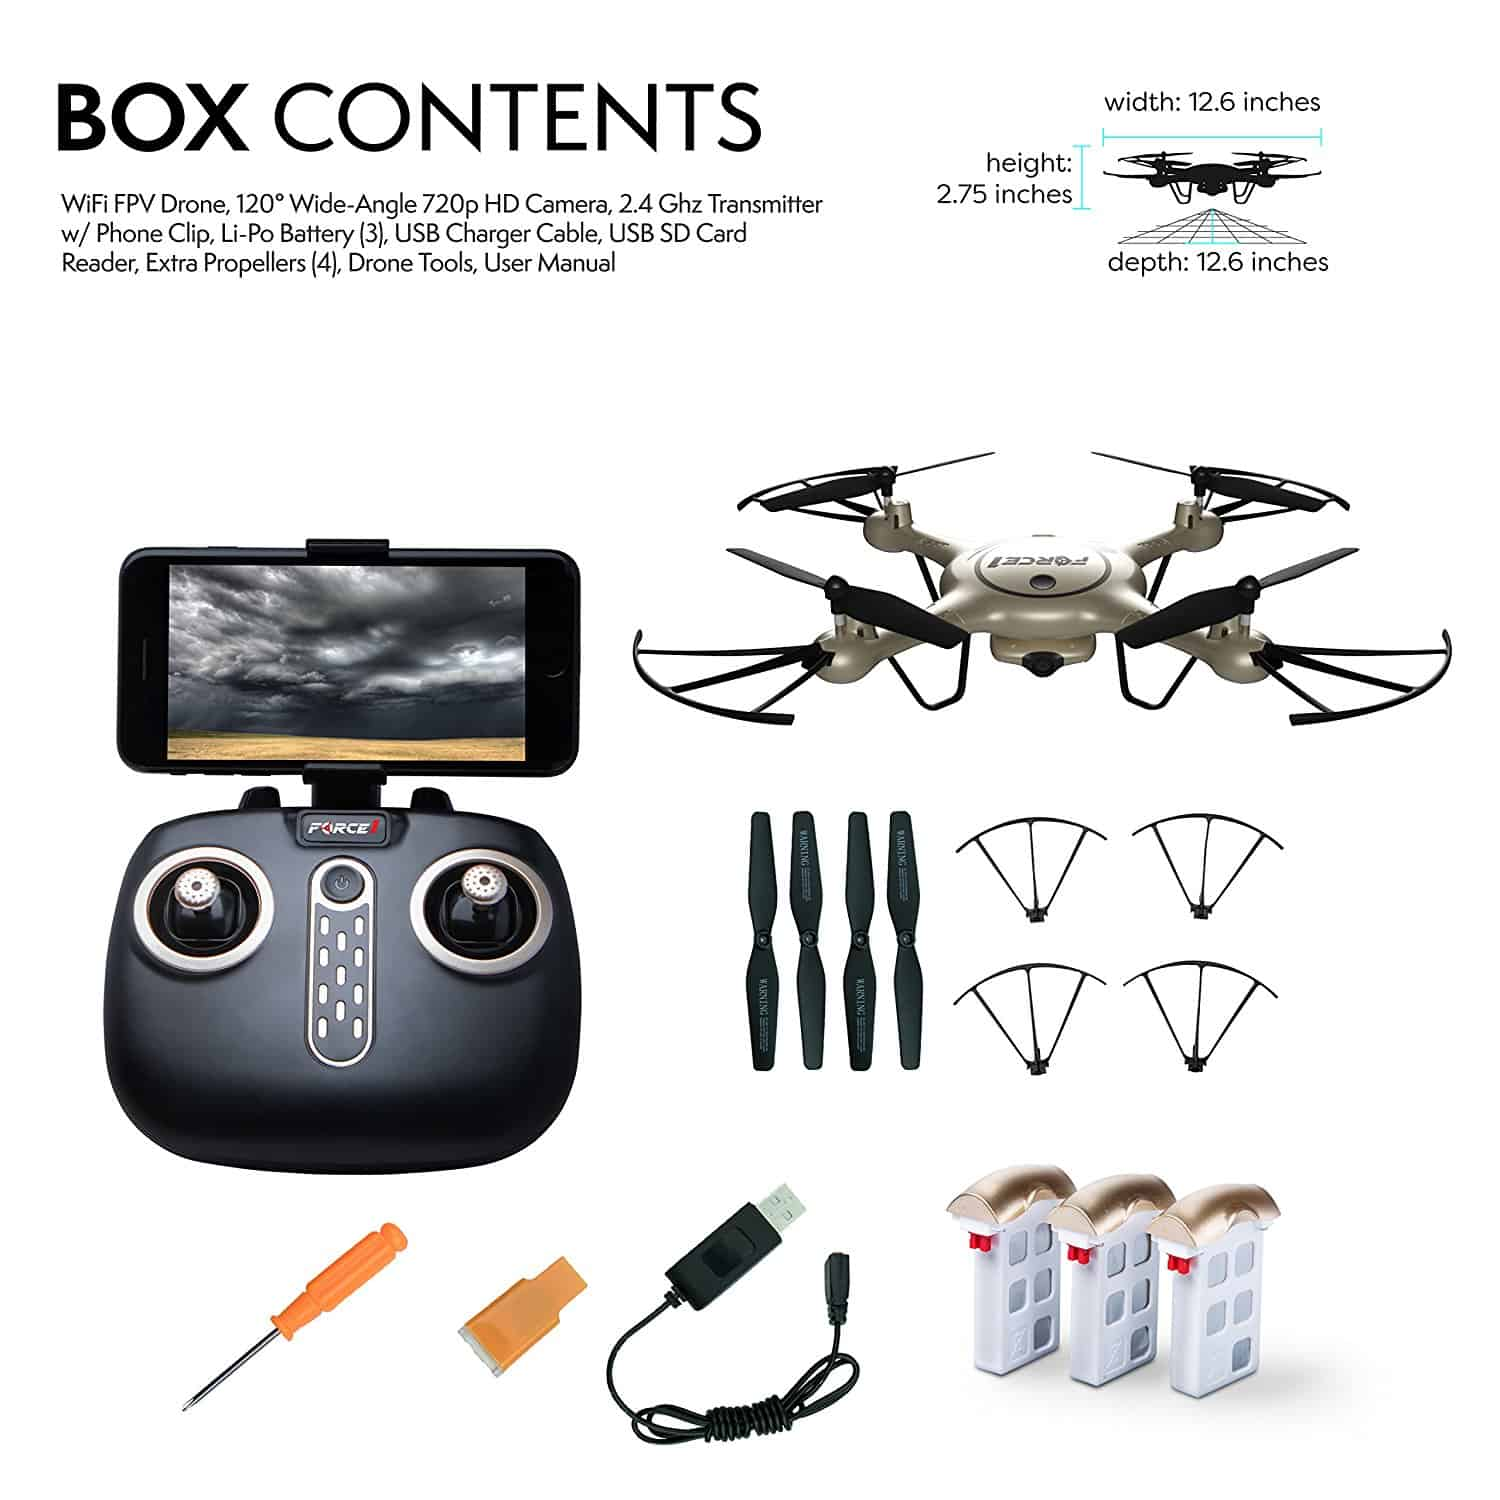 Top 20 Remote Control Drones For Sale Compare And Shop Rc The Wireless System Has One Mode T You 1